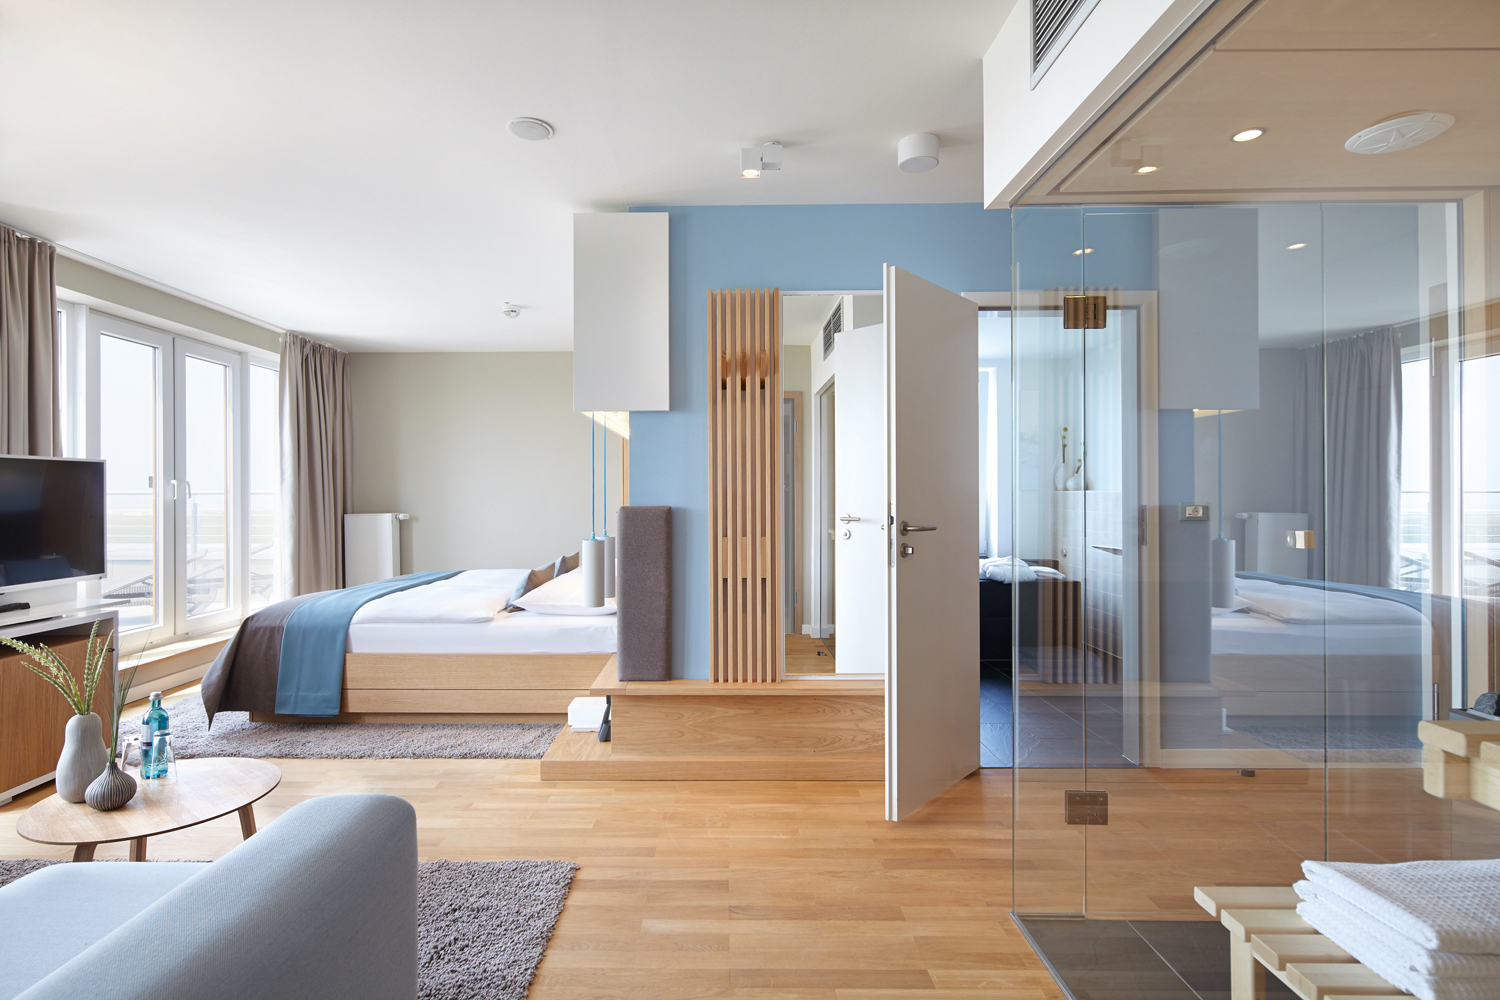 St peter ording strandgut resort the blog for Designhotel nordsee